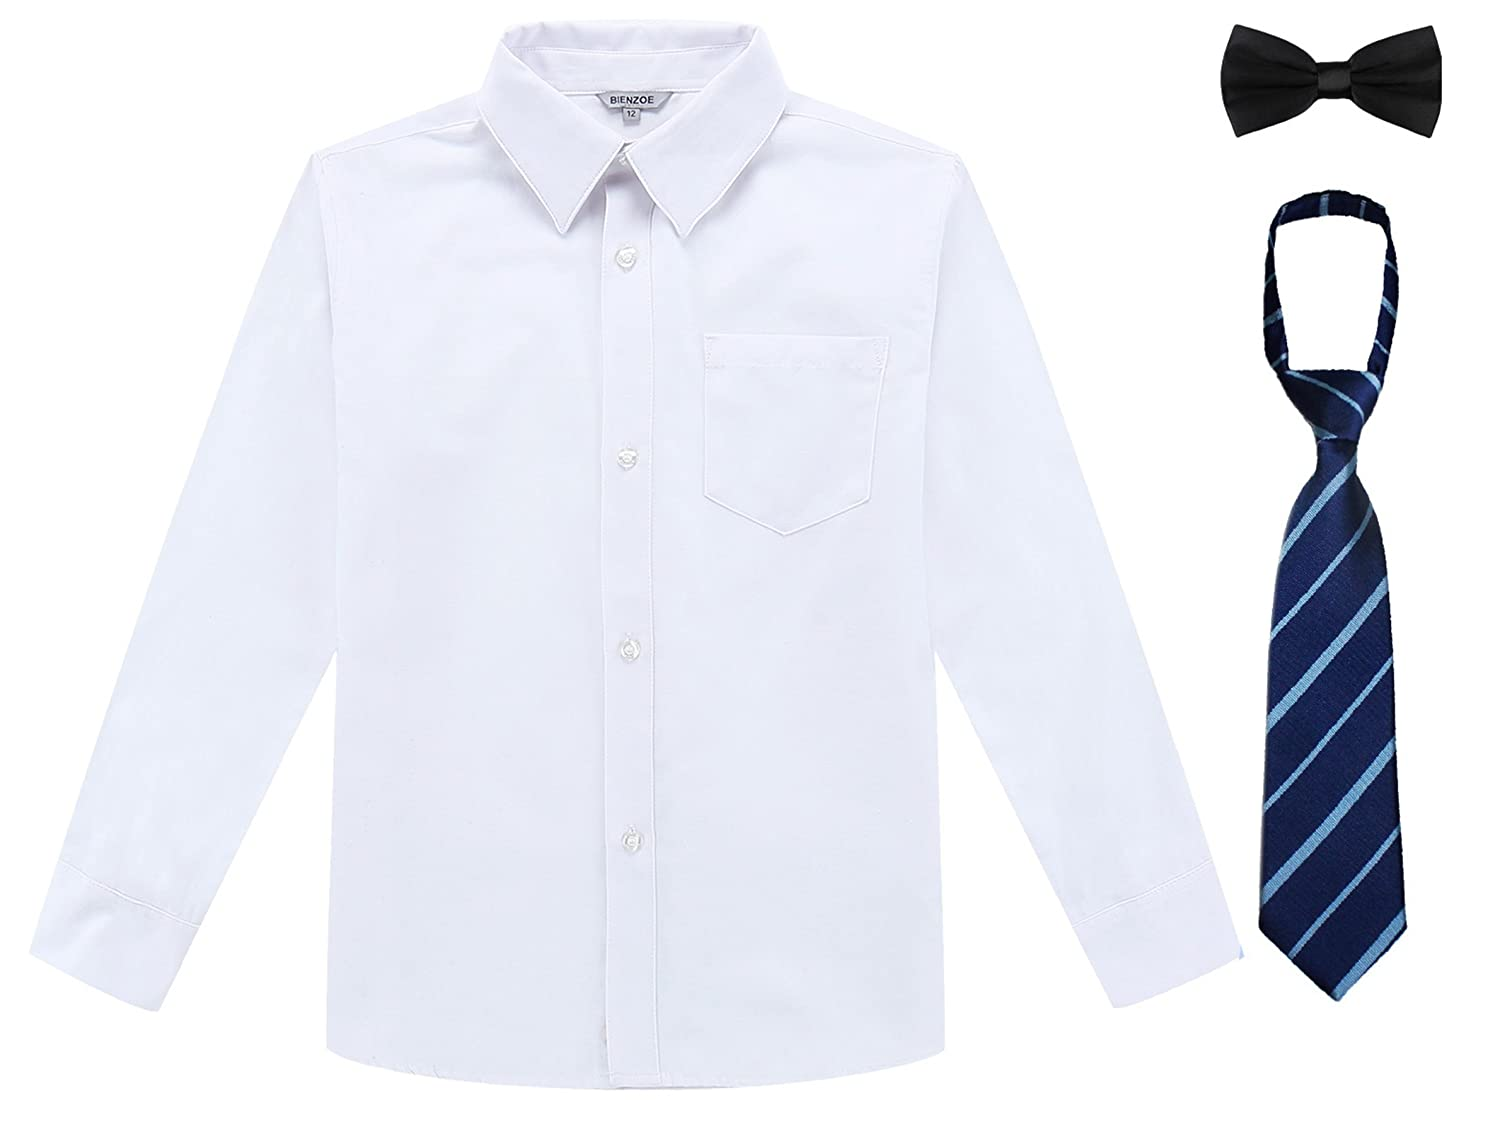 Bienzoe Boy's School Uniform Long Sleeve Button Down Oxford Shirt & Tie, Bowtie